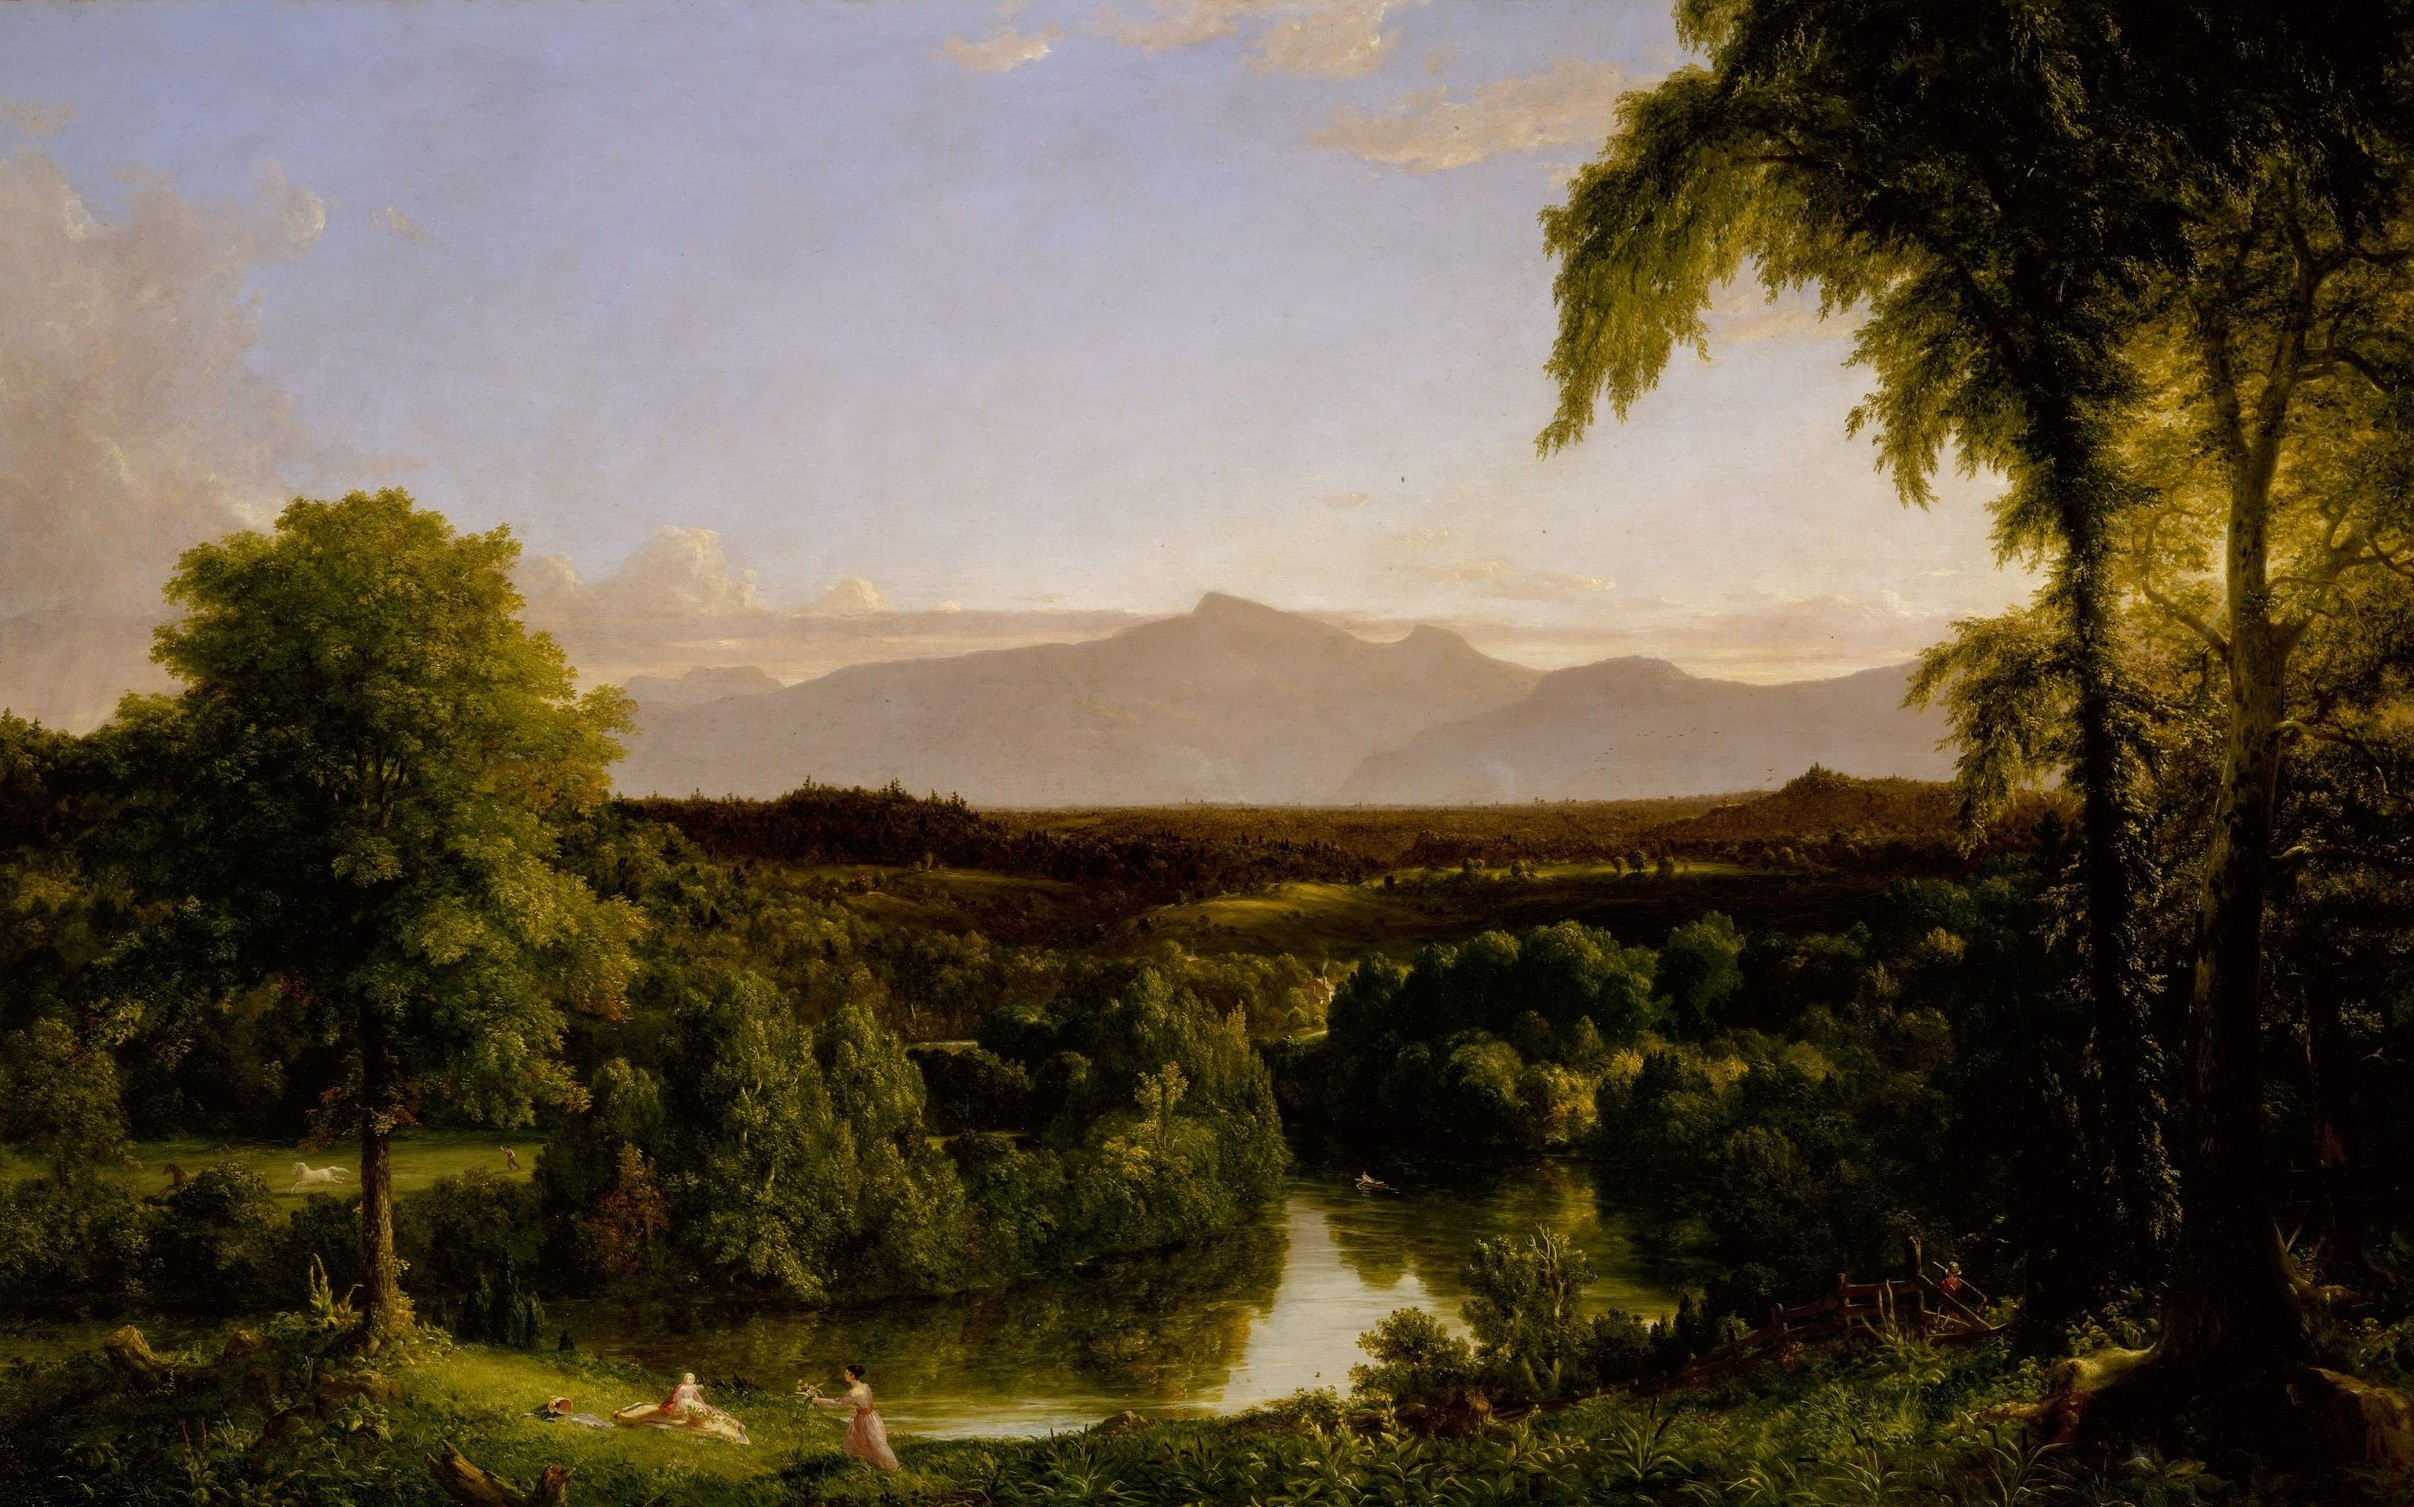 Thomas Cole,  View on Catskill Creek - Early Autumn , 1836-7, The Metropolitan Museum of Art